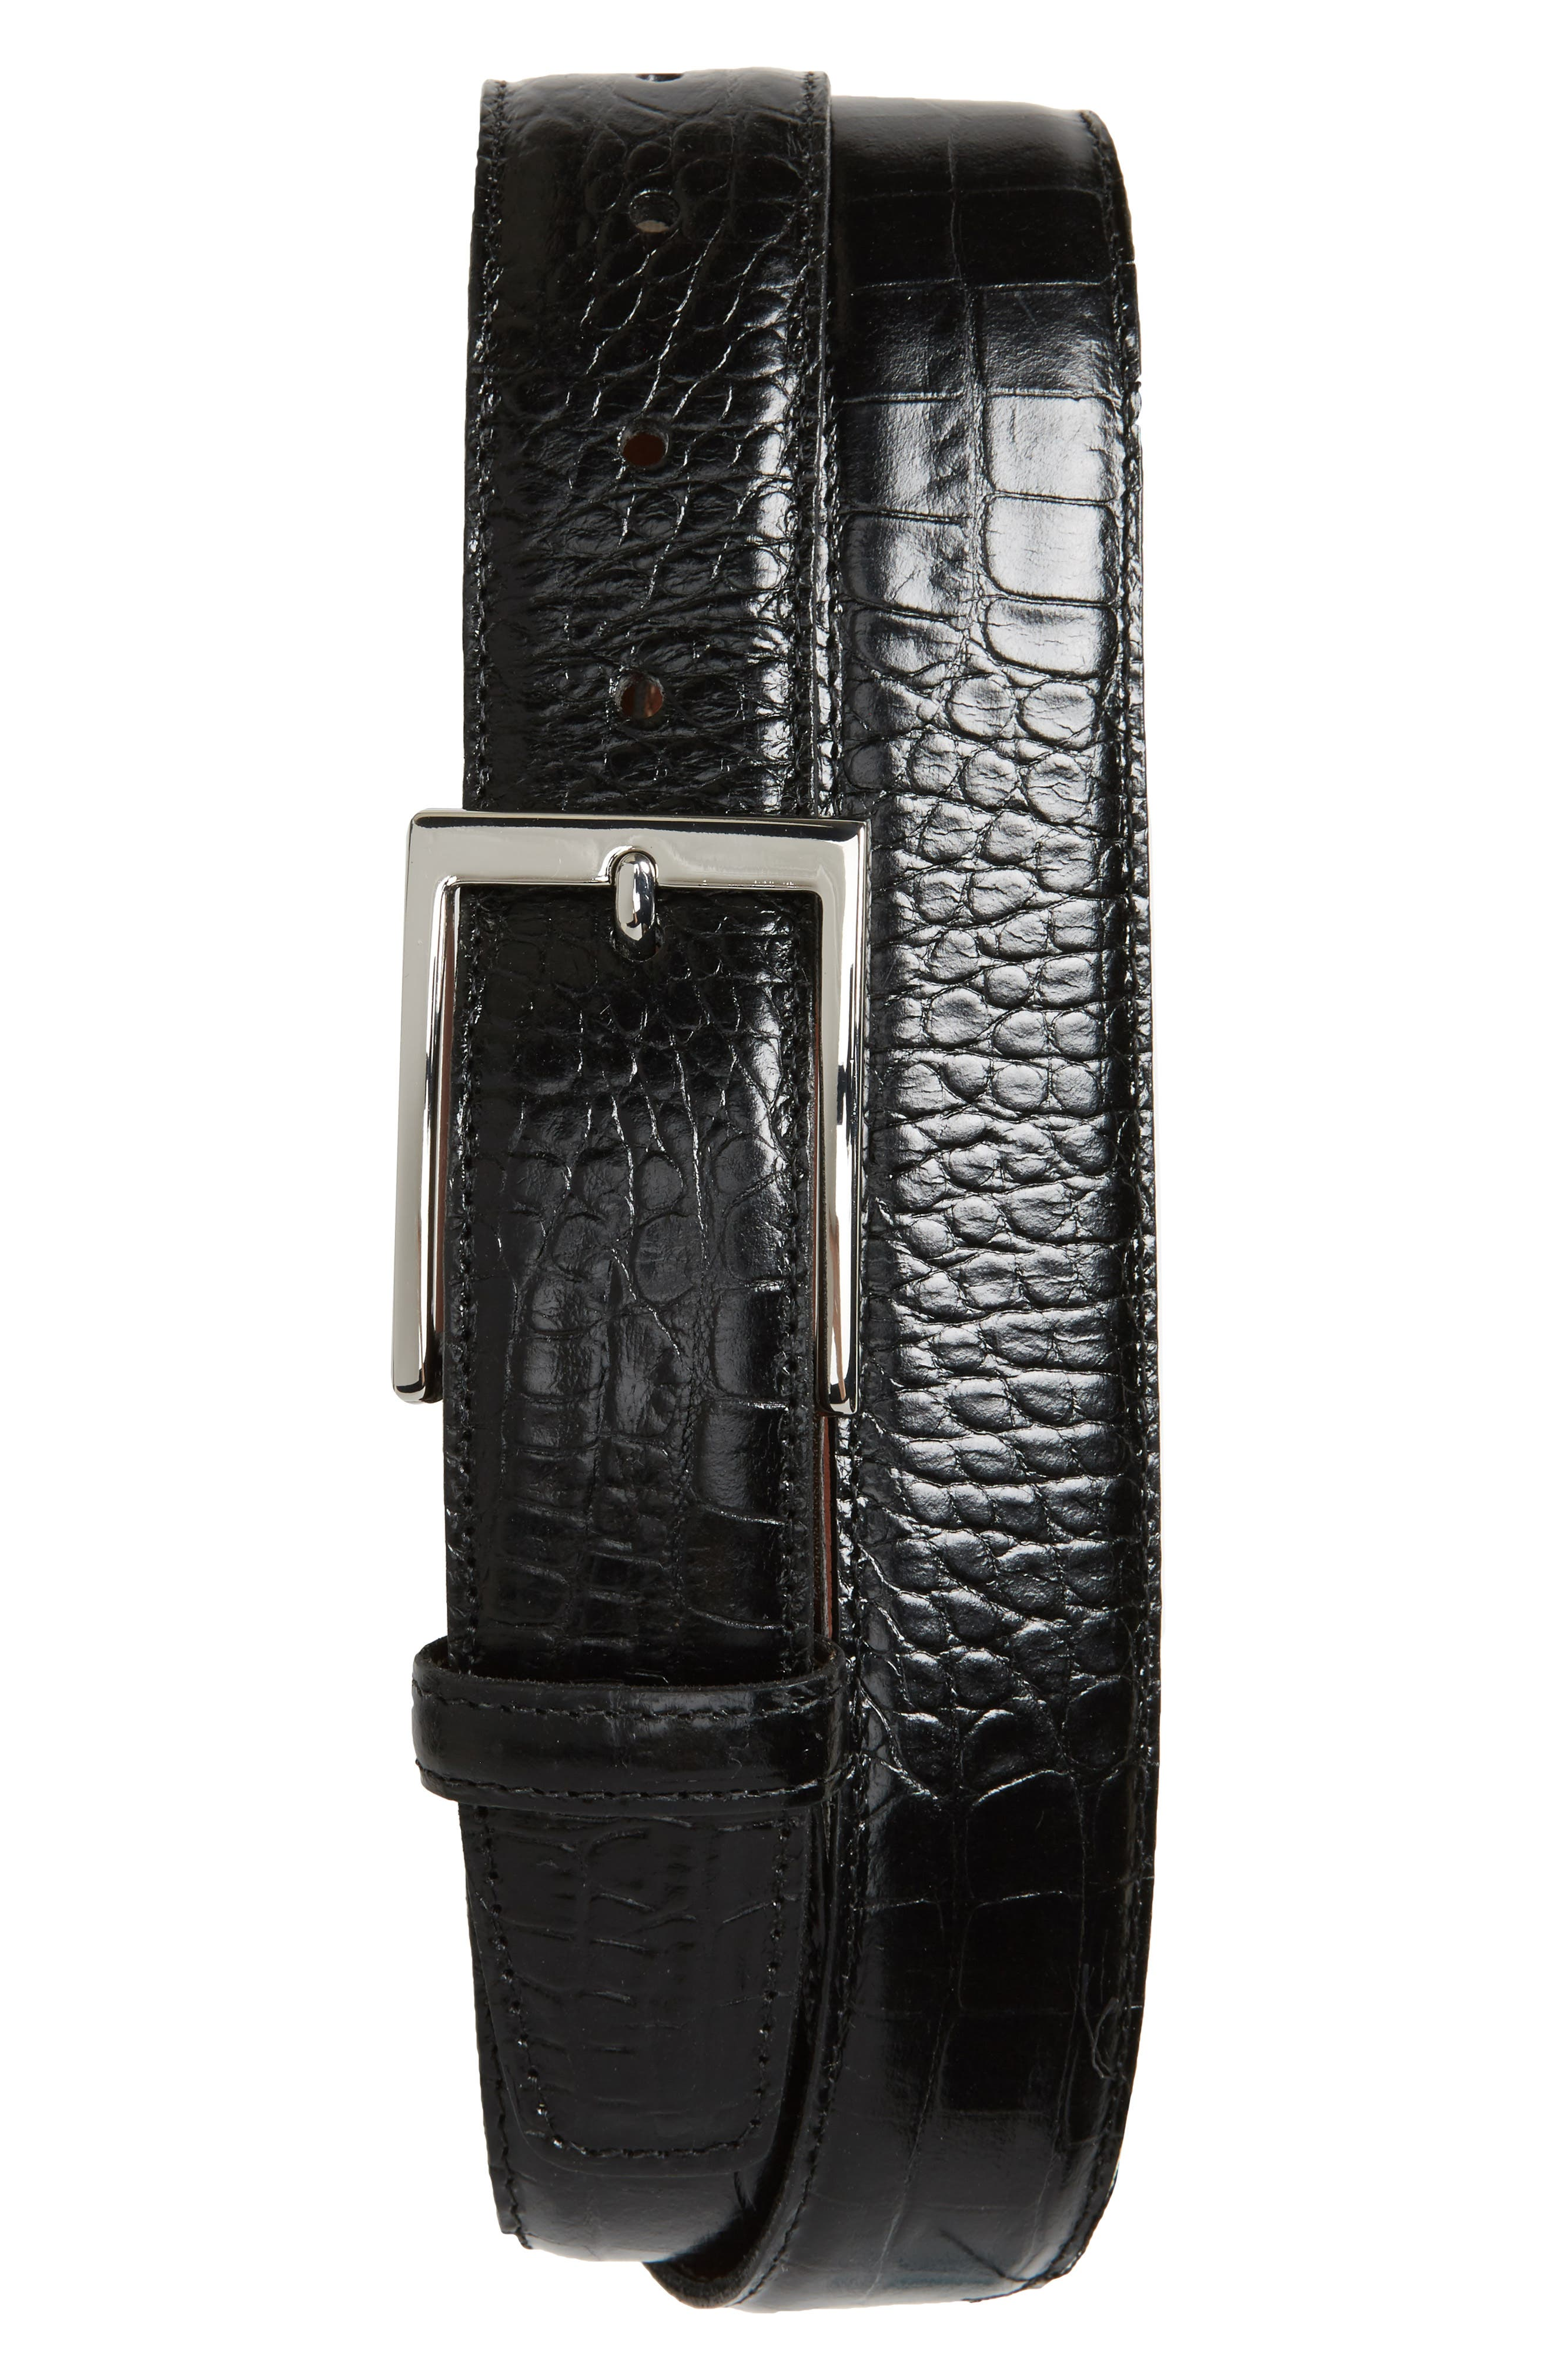 Gator-skin embossing brings rich, distinctive detail to a leather belt crafted in the USA with two interchangeable rectangular buckles - one silvertone, one brass. Style Name: Torino Gator Grain Embossed Leather Belt. Style Number: 5596623. Available in stores.